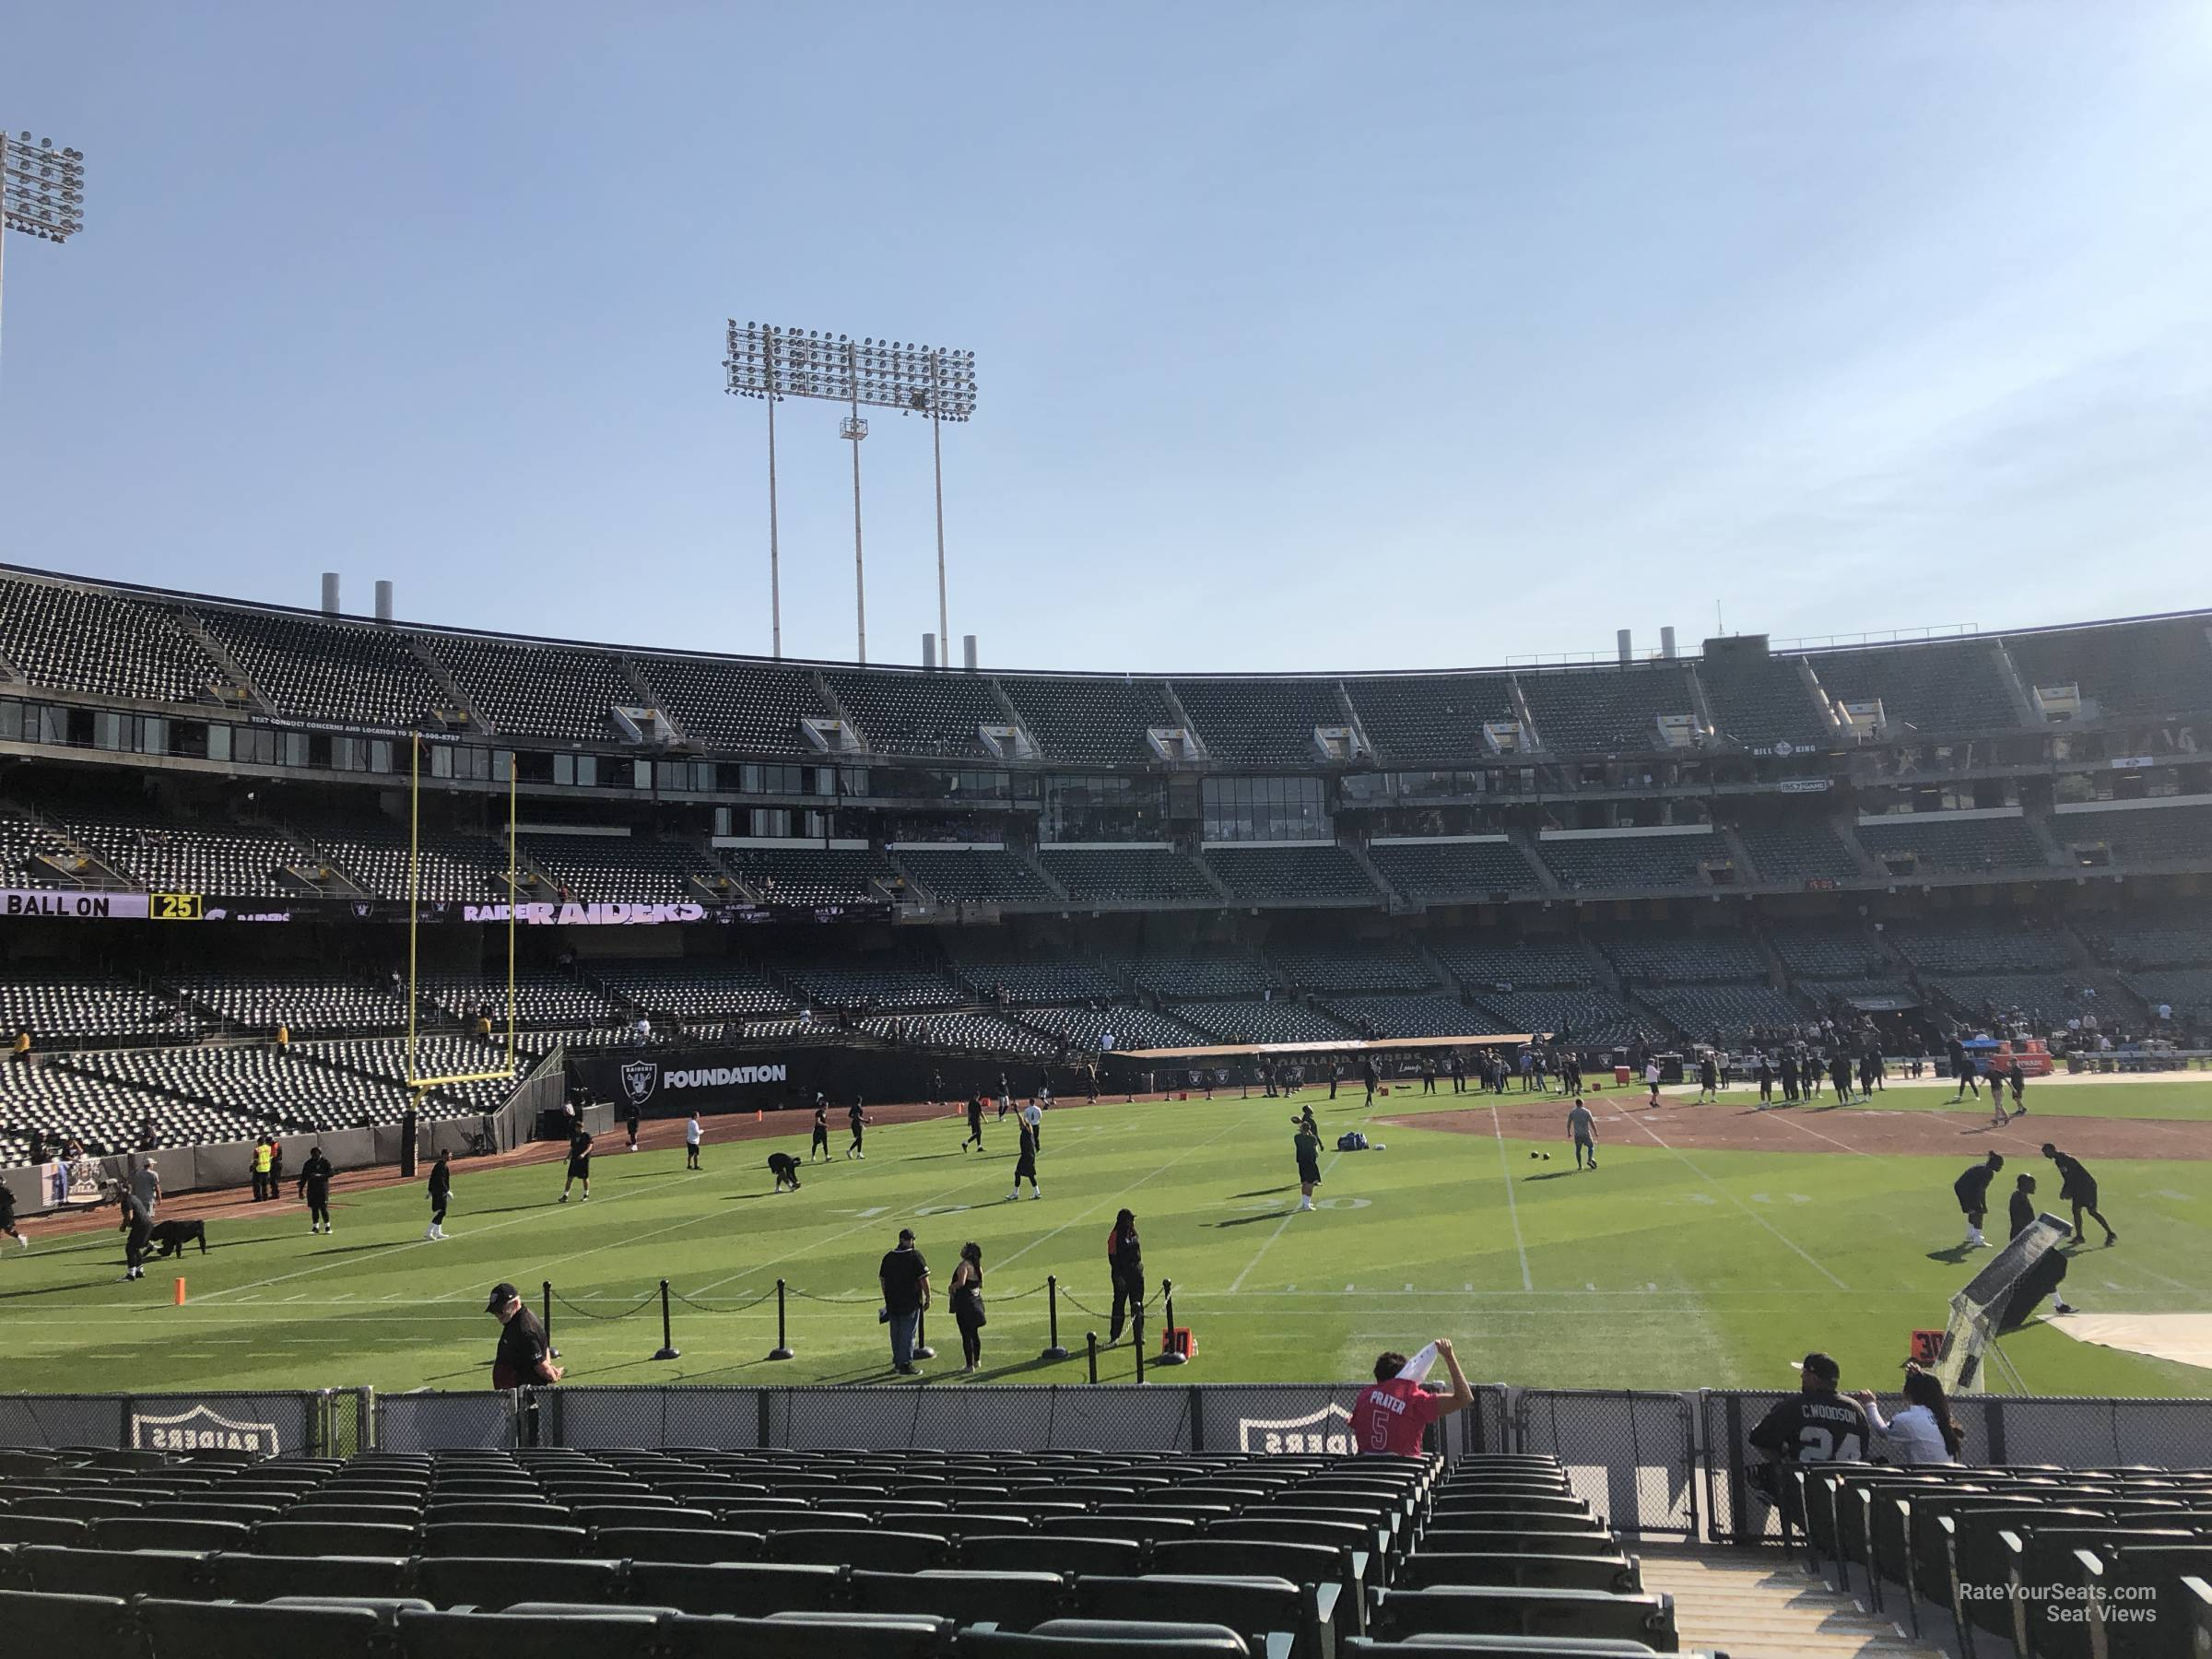 Oakland Raiders Seat View for Oakland Coliseum Section 144, Row 15